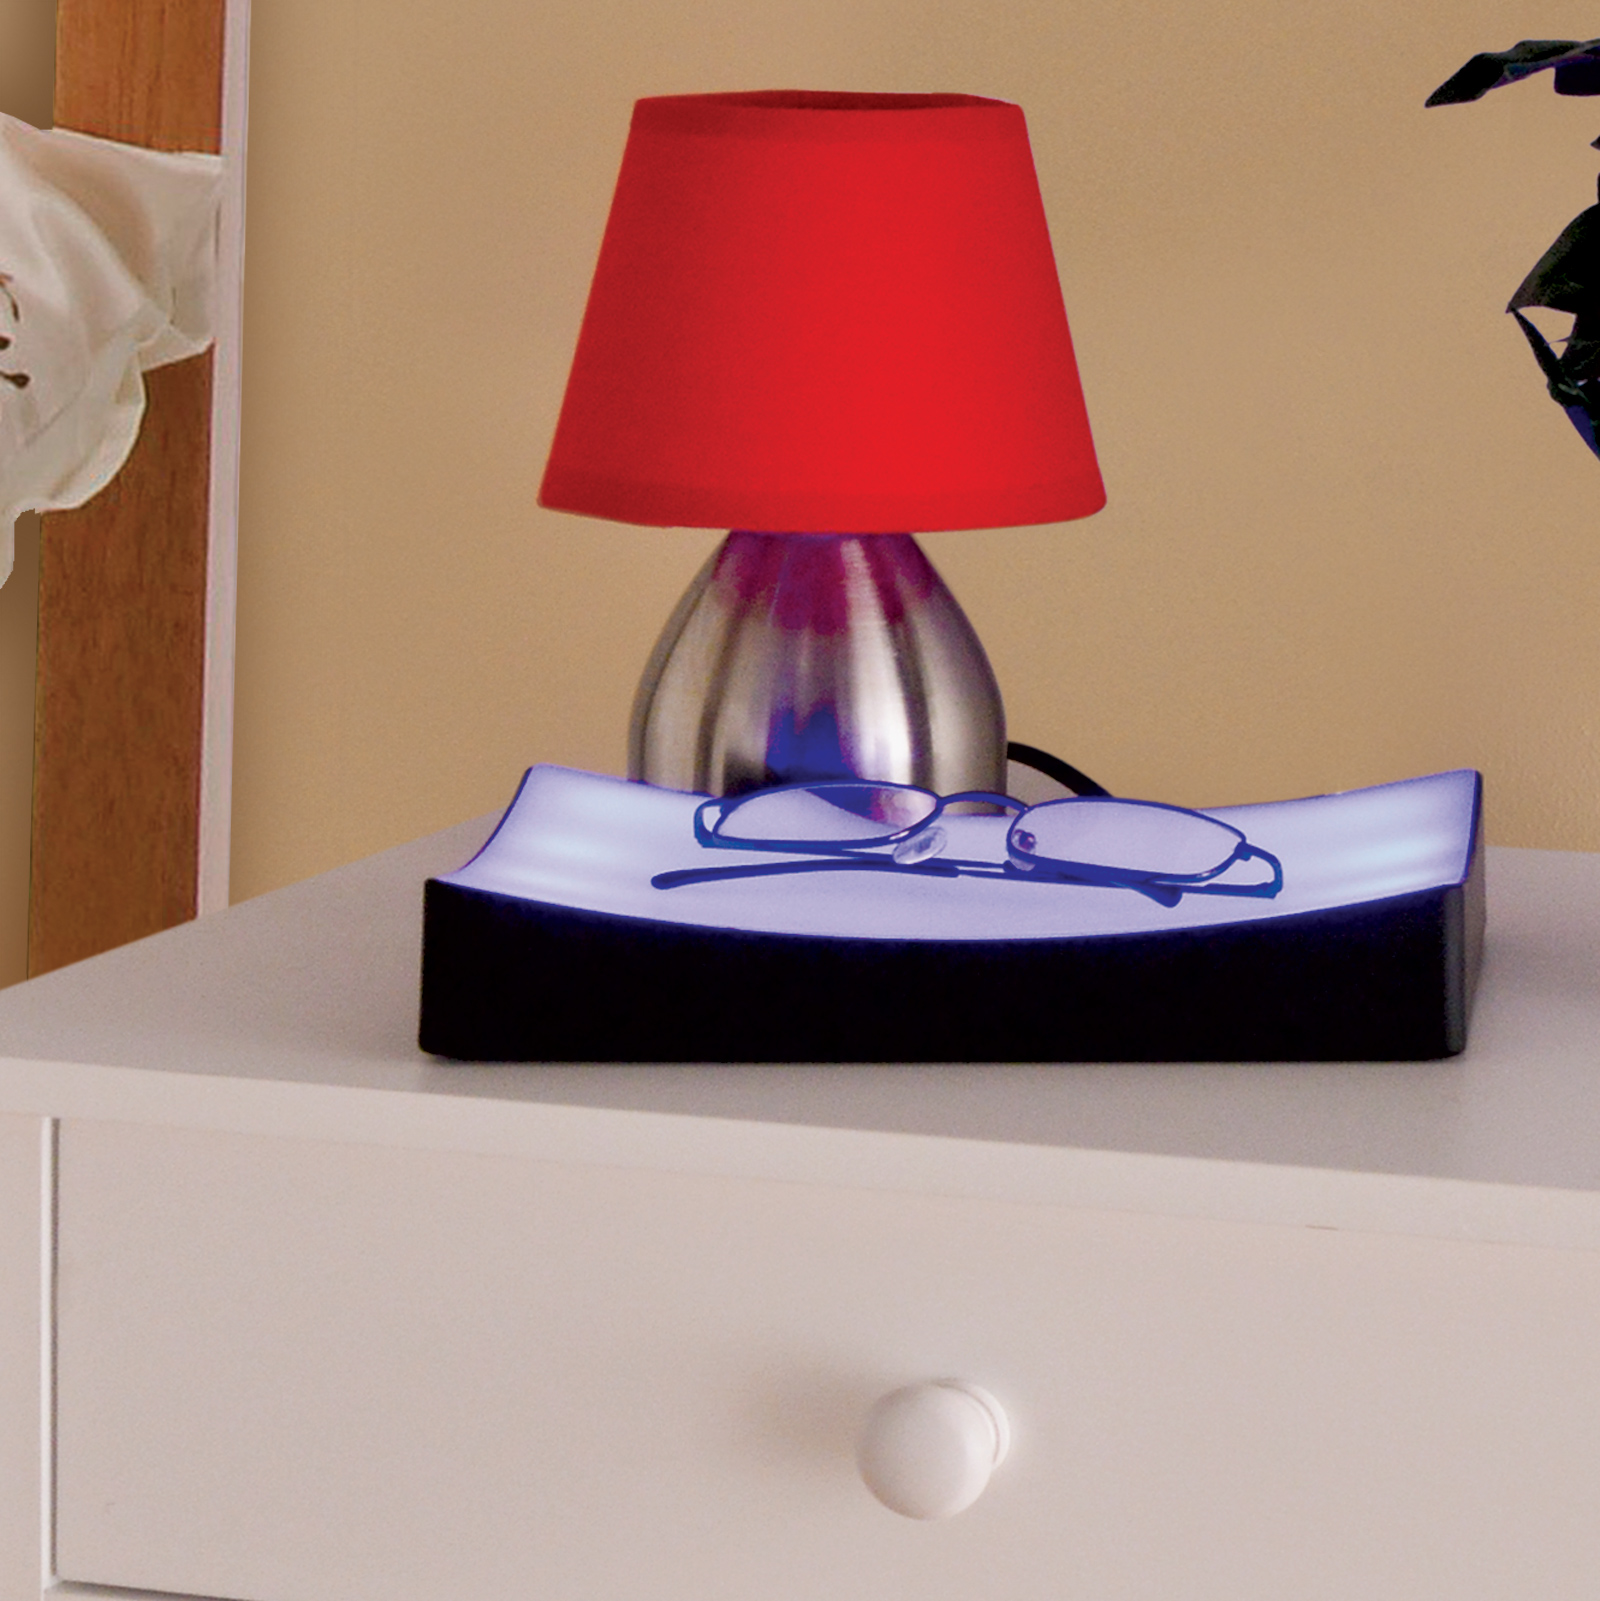 Bedroom Lamps On Ebay: Bedside Touch Lamp Tray Bedroom Lights Dimmer Blue Table